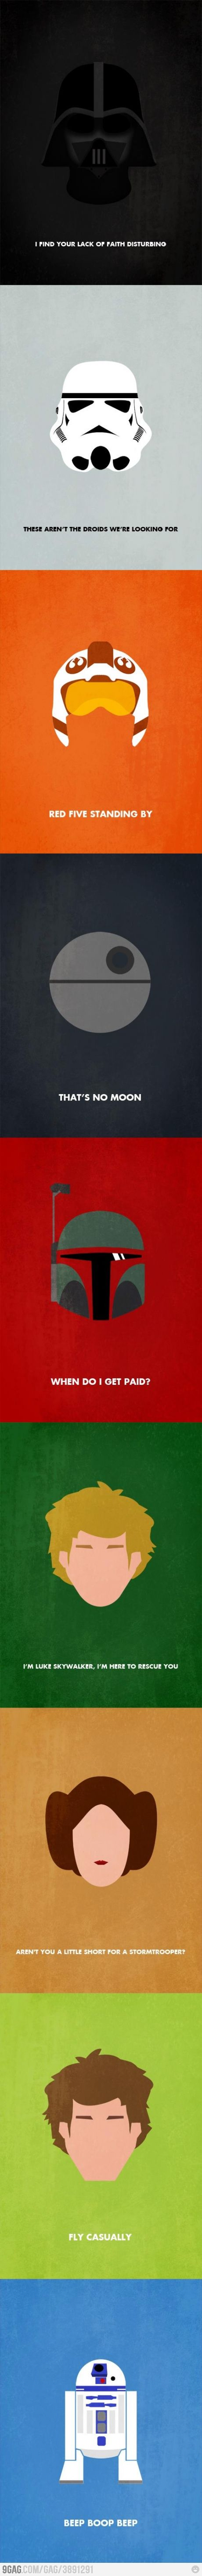 Star Wars.  Nothing more to say.